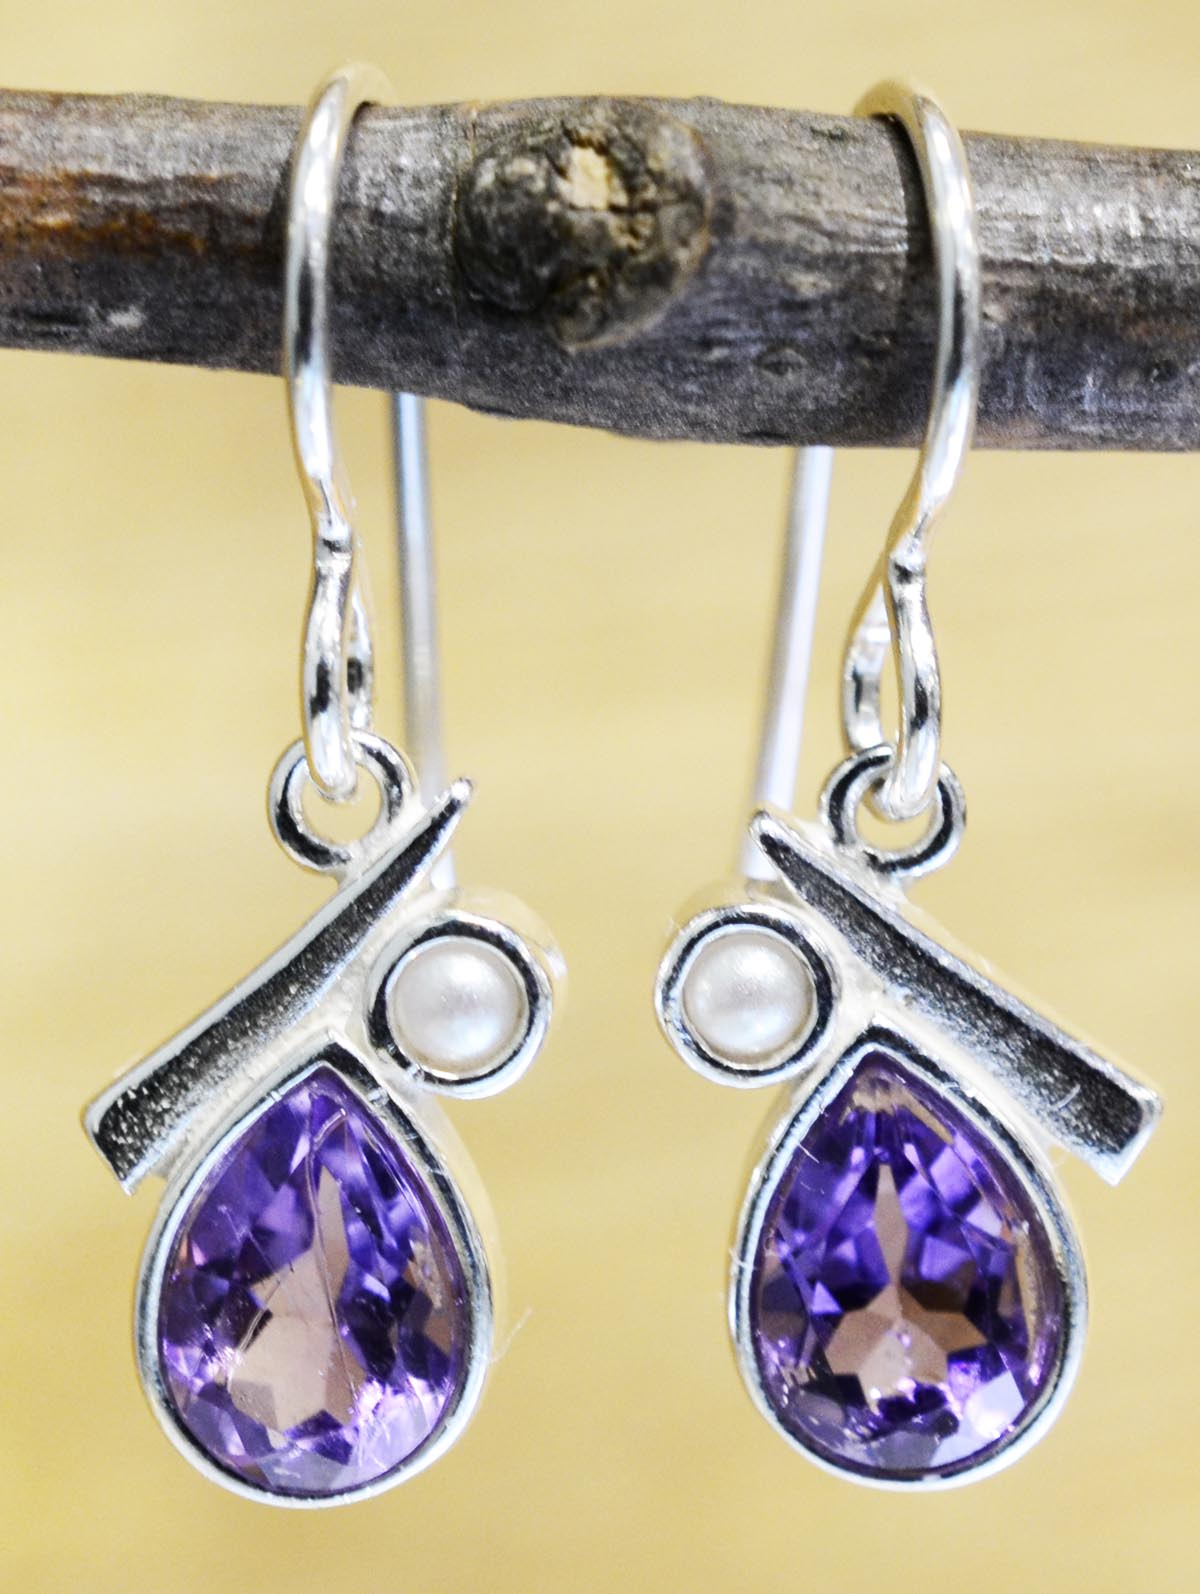 These pear shaped amethyst and pearl earrings are handmade by Sonoma Art Works.